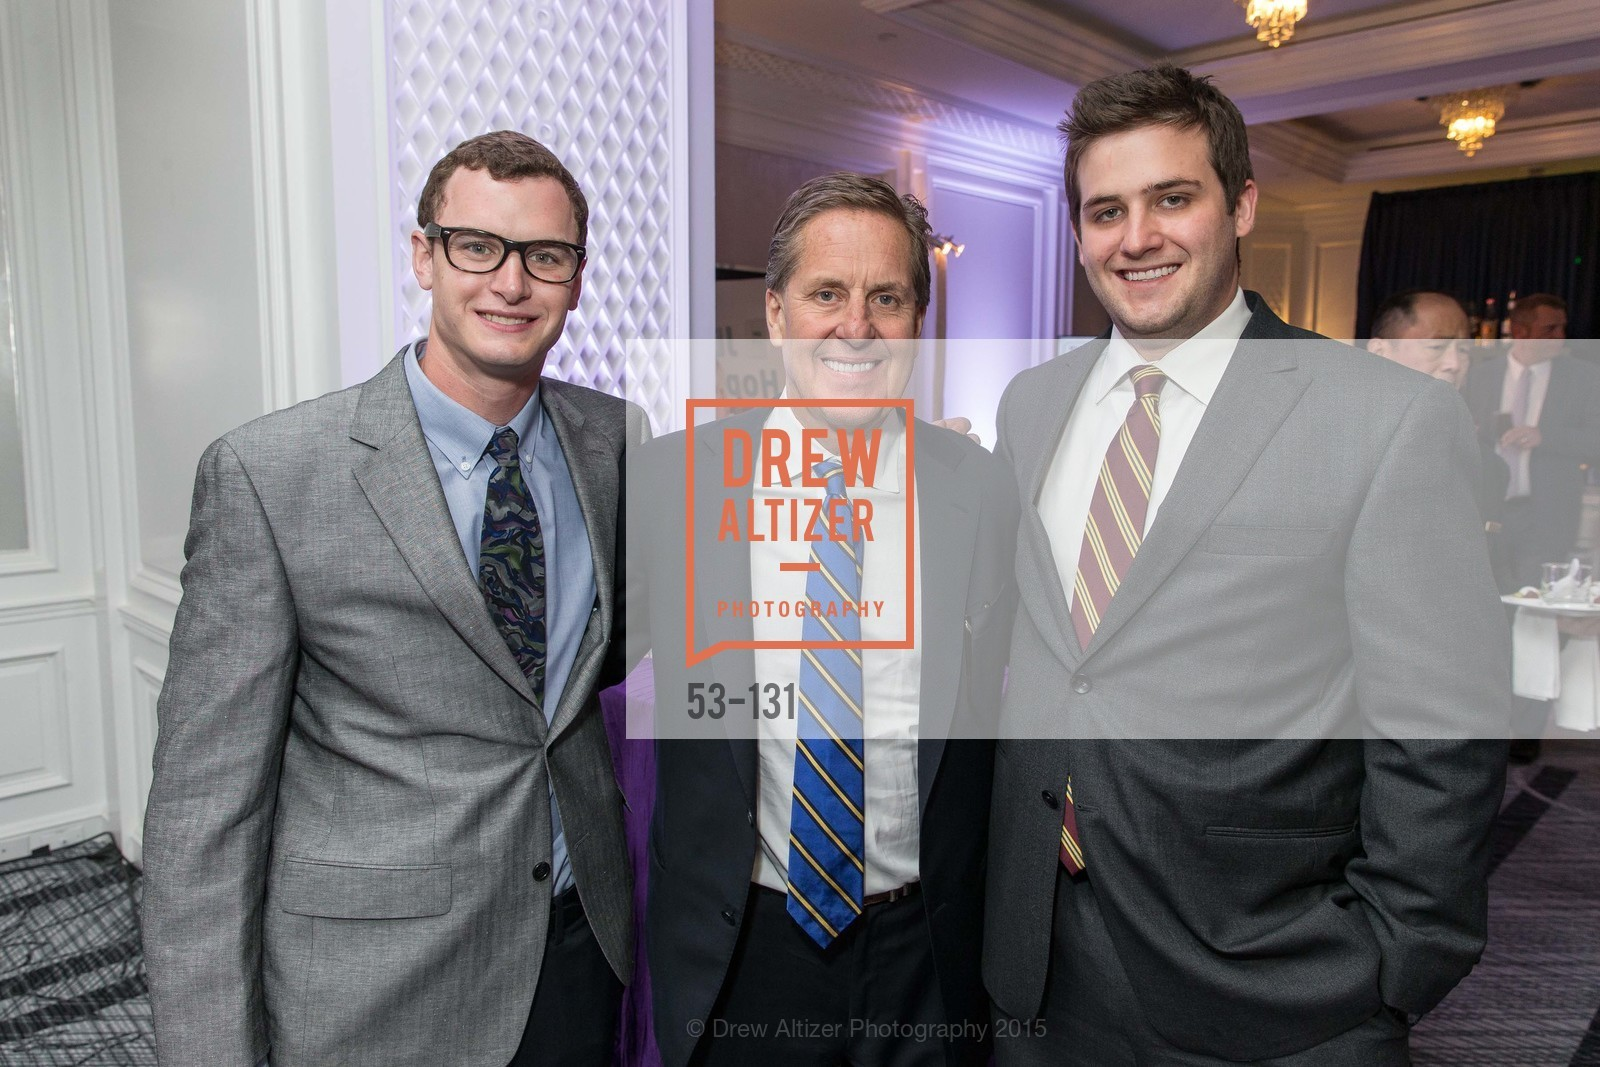 Conner Todd, Mark Tharp, Will Tharp, JUVENILE DIABETES RESEARCH FOUNDATION  Hope Gala, The Ritz-Carlton, May 29th, 2015,Drew Altizer, Drew Altizer Photography, full-service agency, private events, San Francisco photographer, photographer california